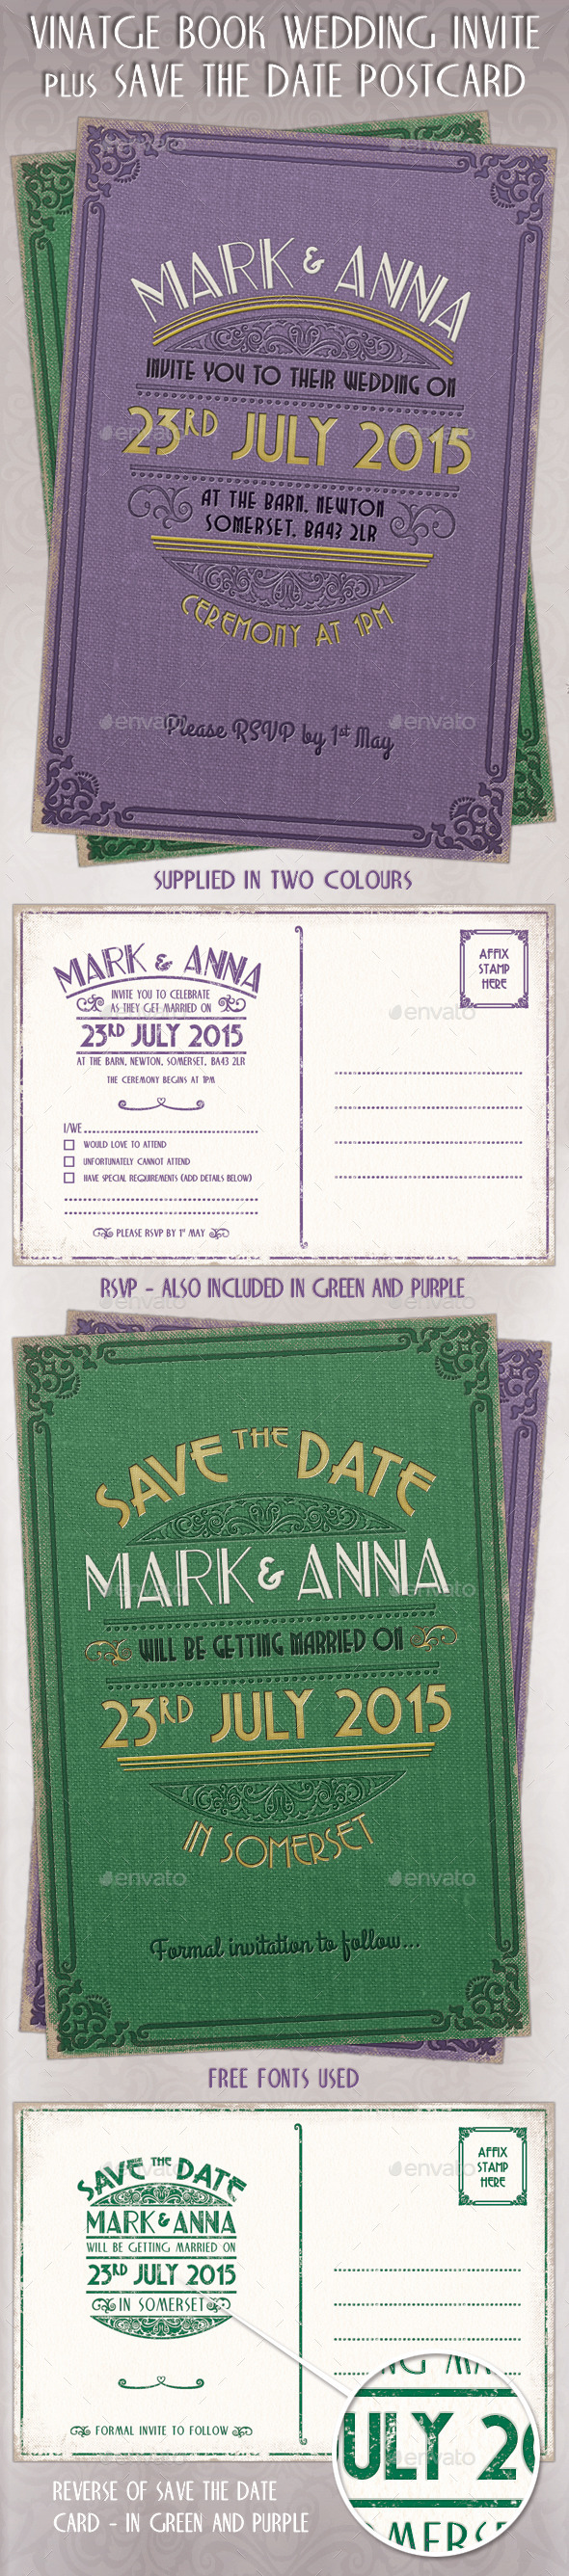 Vintage Wedding Invites, RSVP & Save the Date - Weddings Cards & Invites